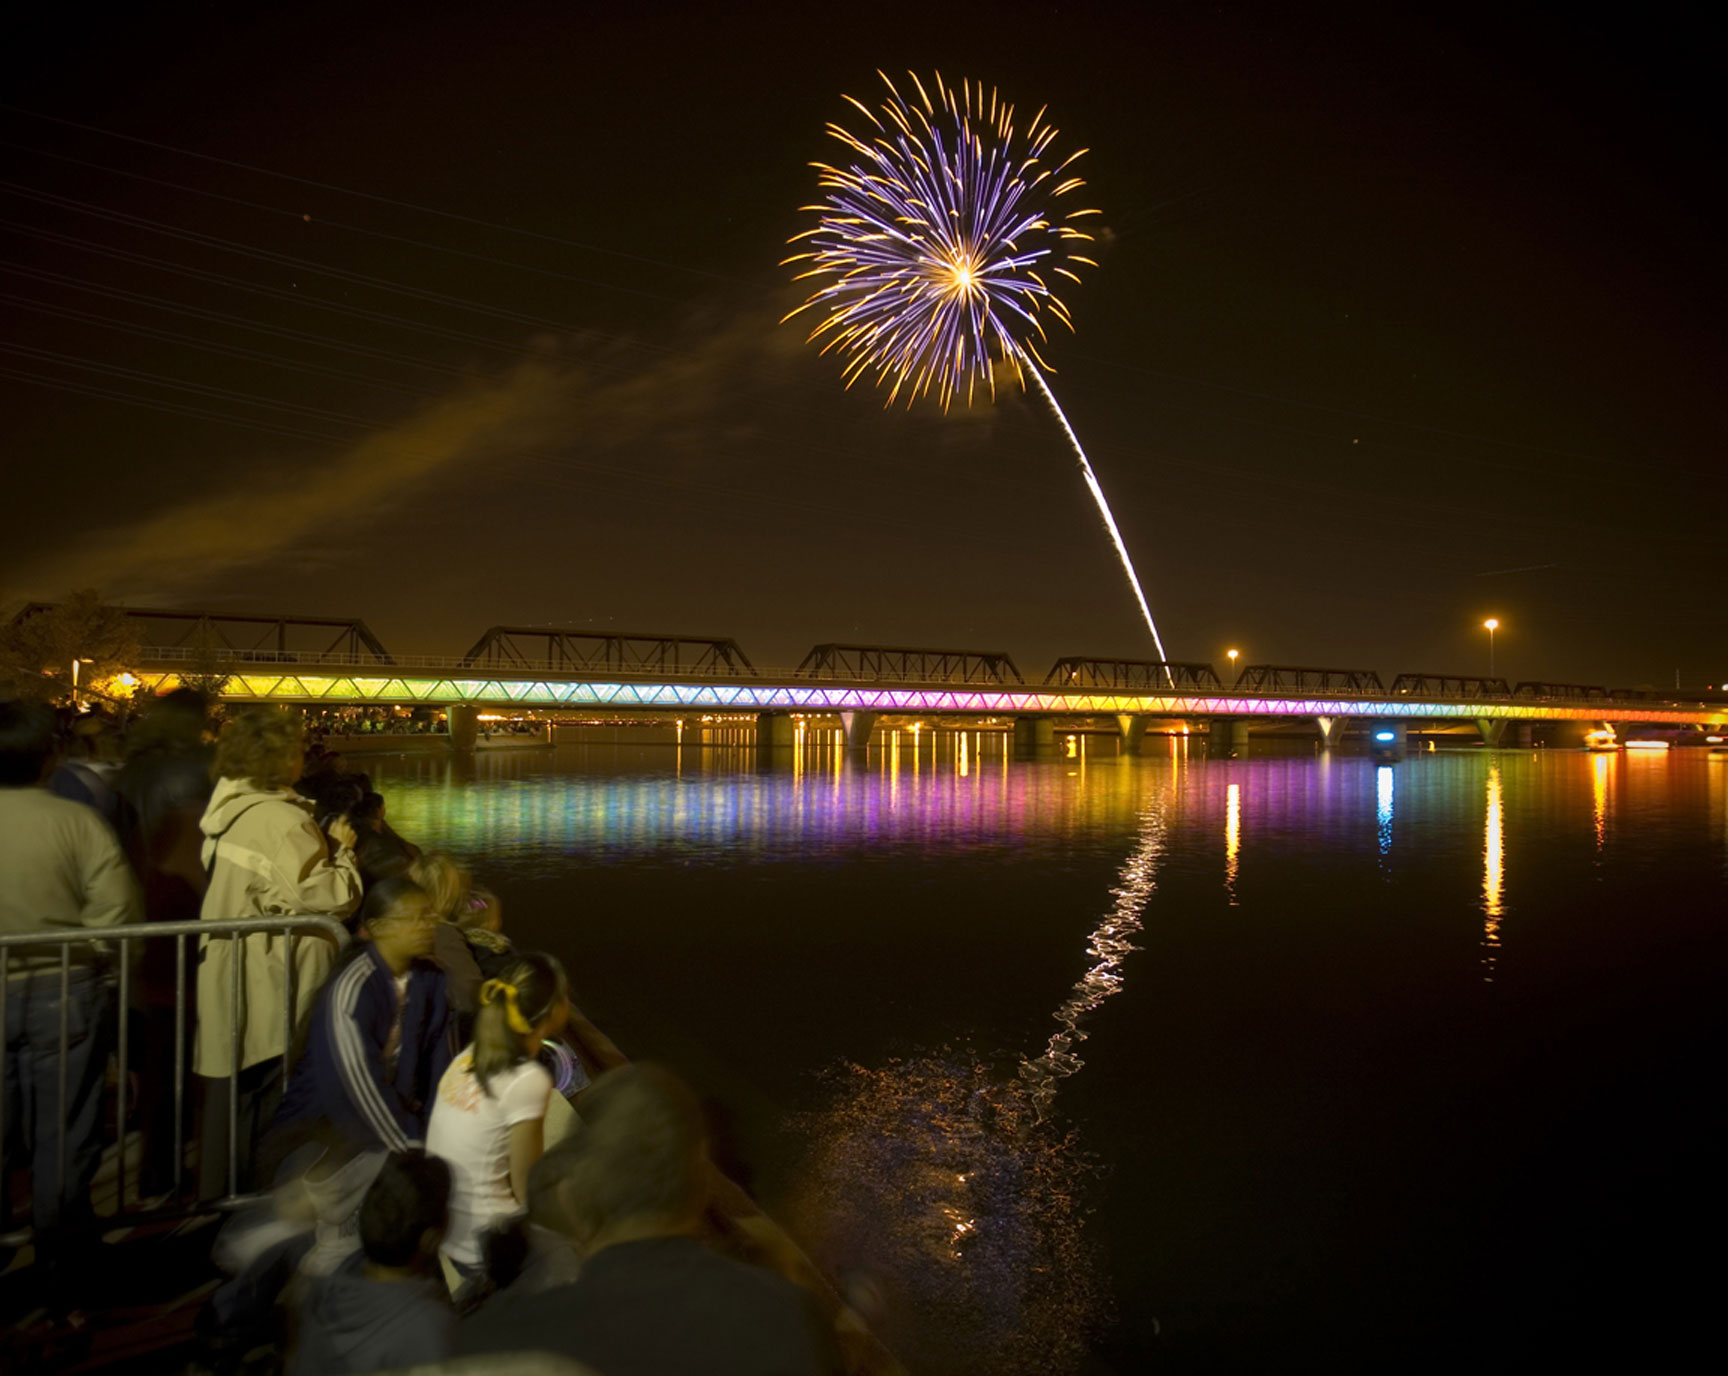 Light Rail Bridge During Fireworks Display